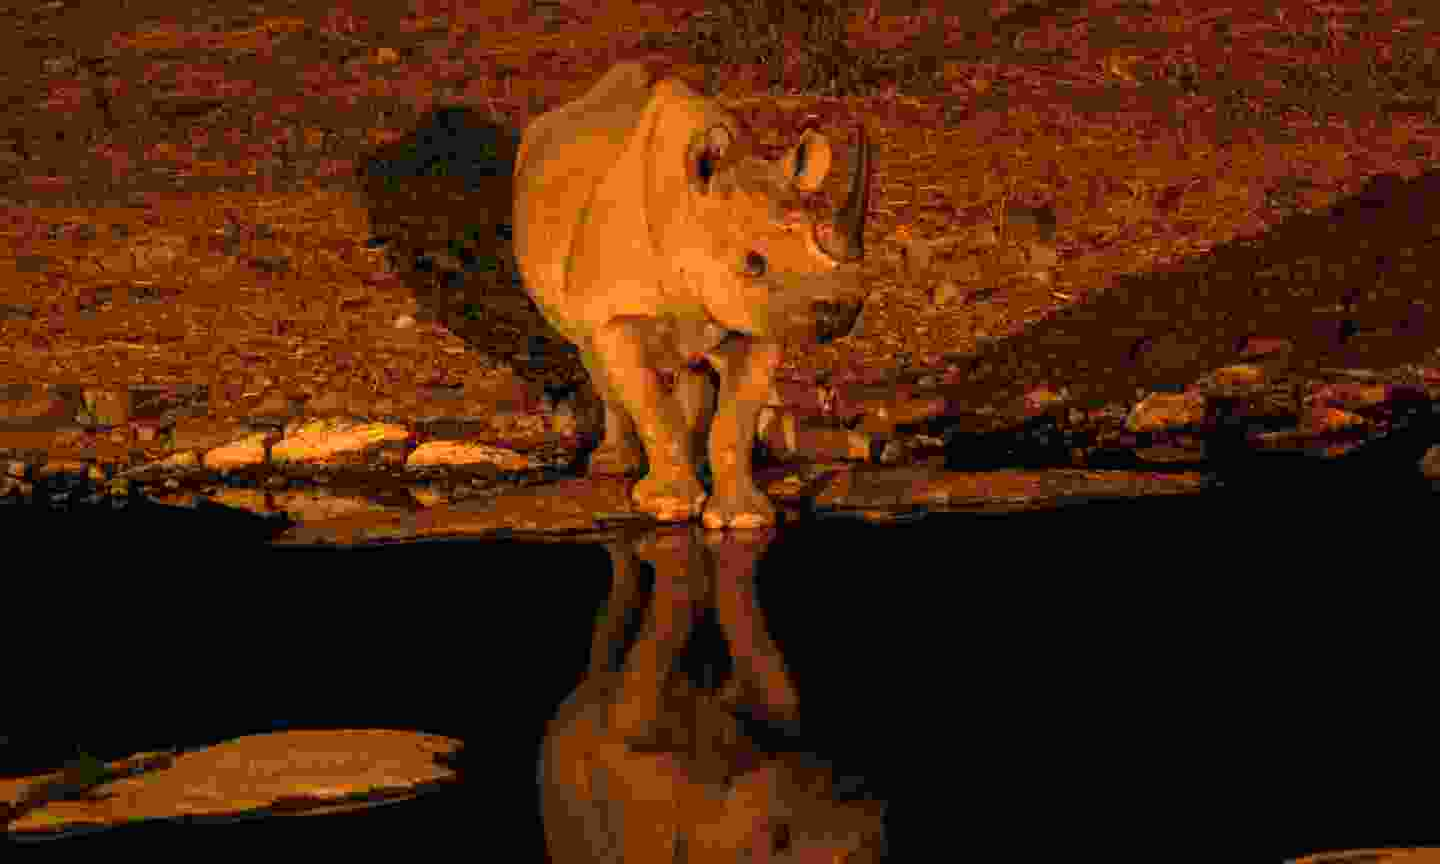 The lit up watering hole at Etosha NP (Dreamstime)